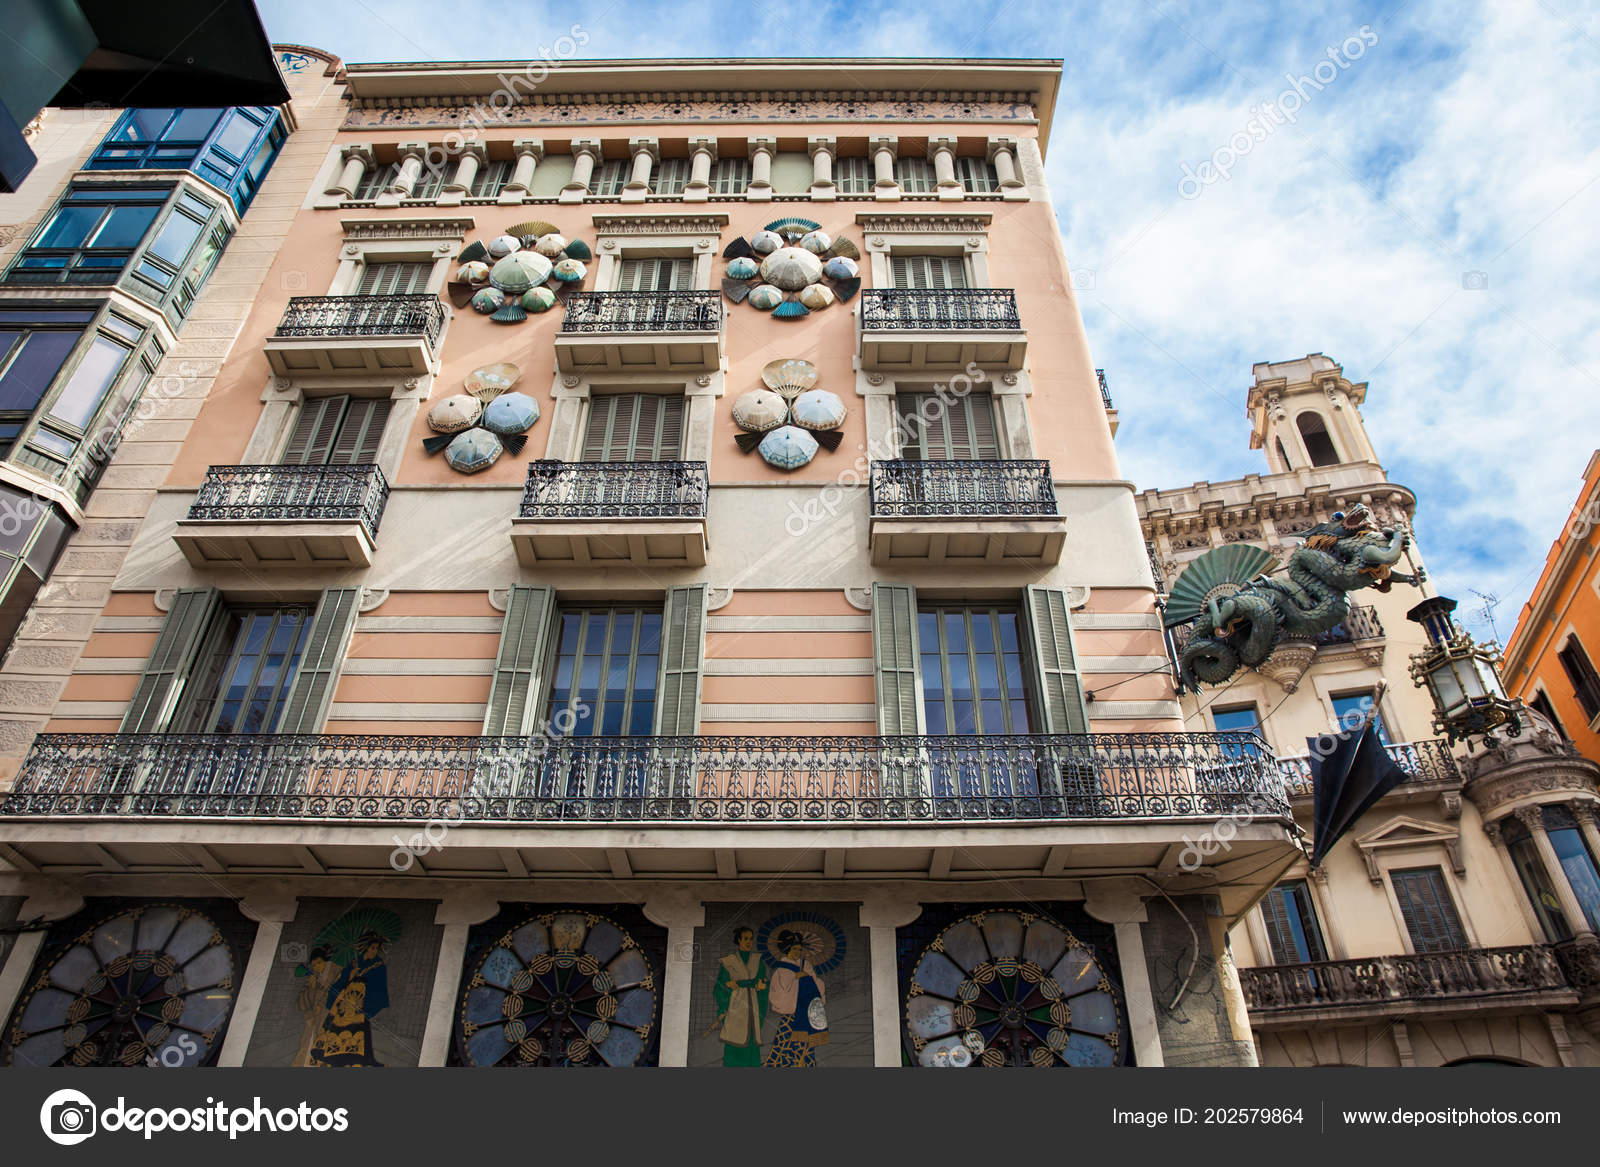 Casa Bruno Barcelona March 2018 House Umbrellas Casa Bruno Cuadros Built 19th